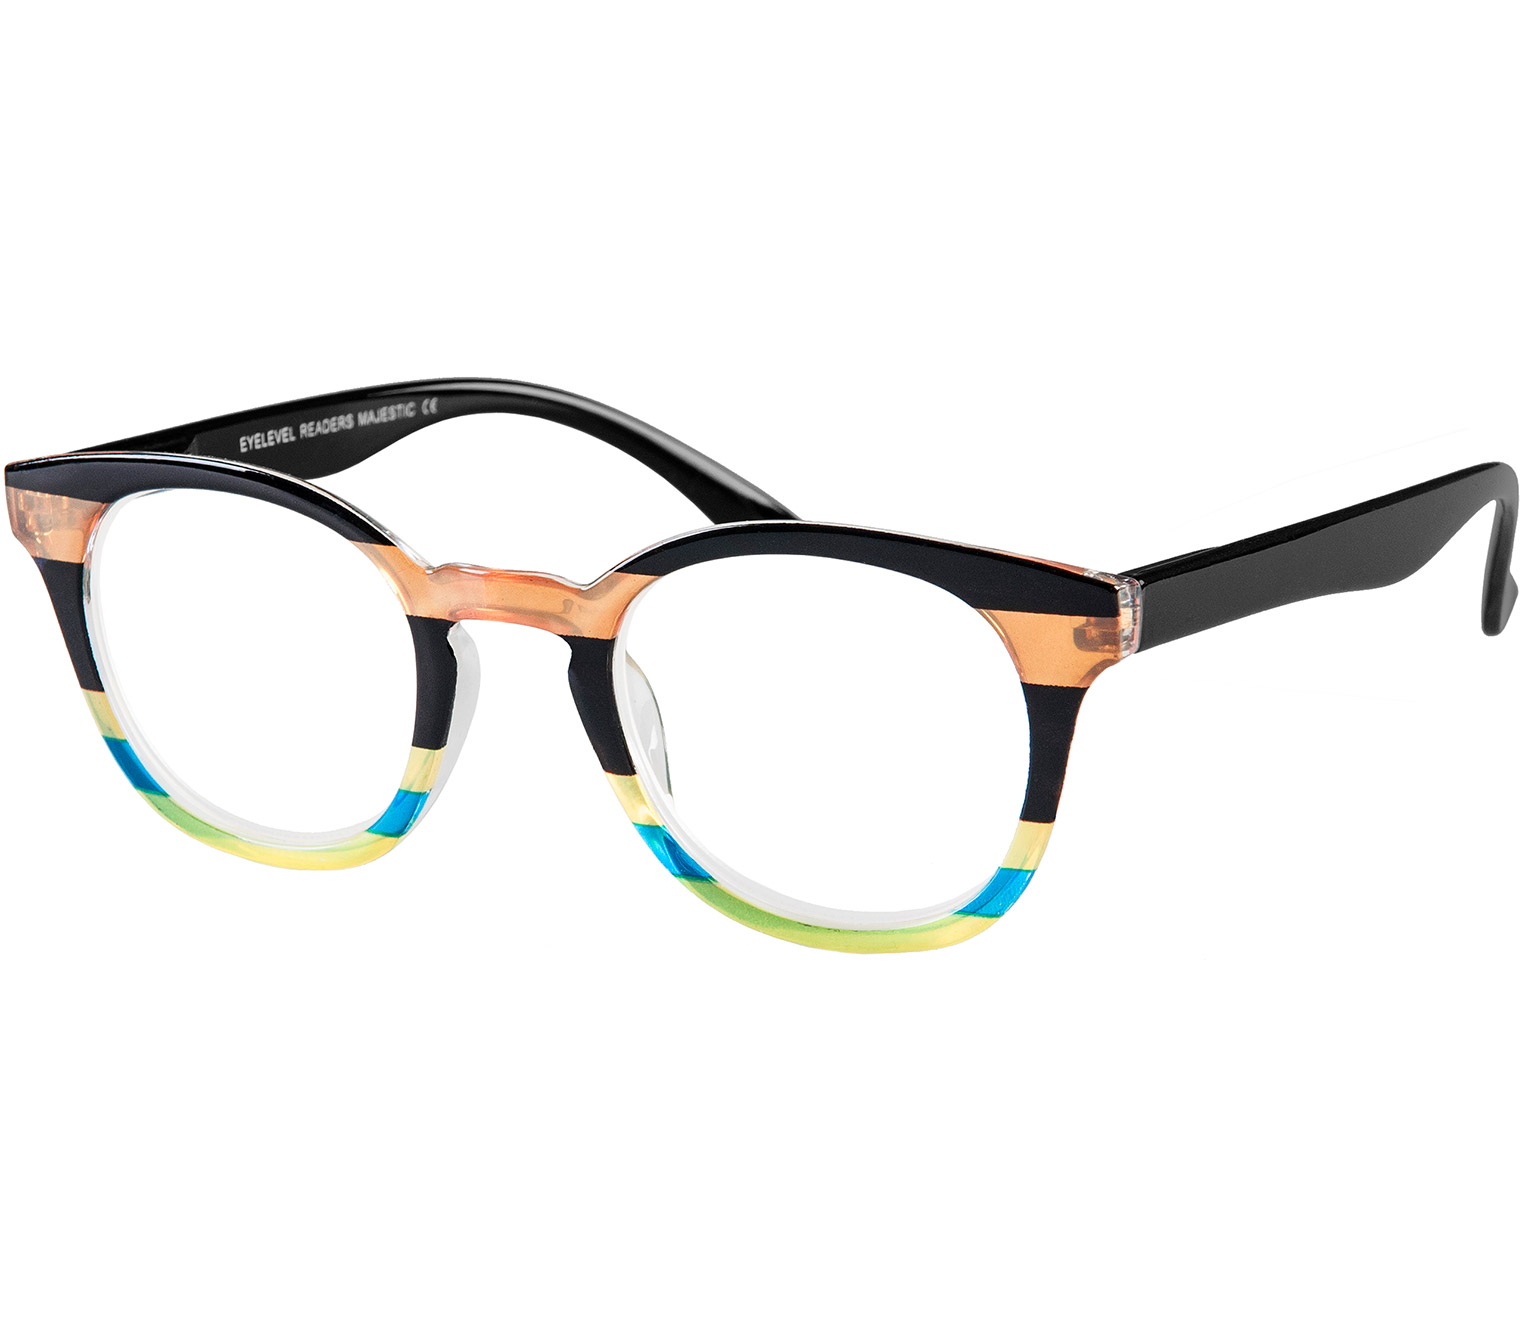 Main Image (Angle) - Majestic (Multi-coloured) Retro Reading Glasses